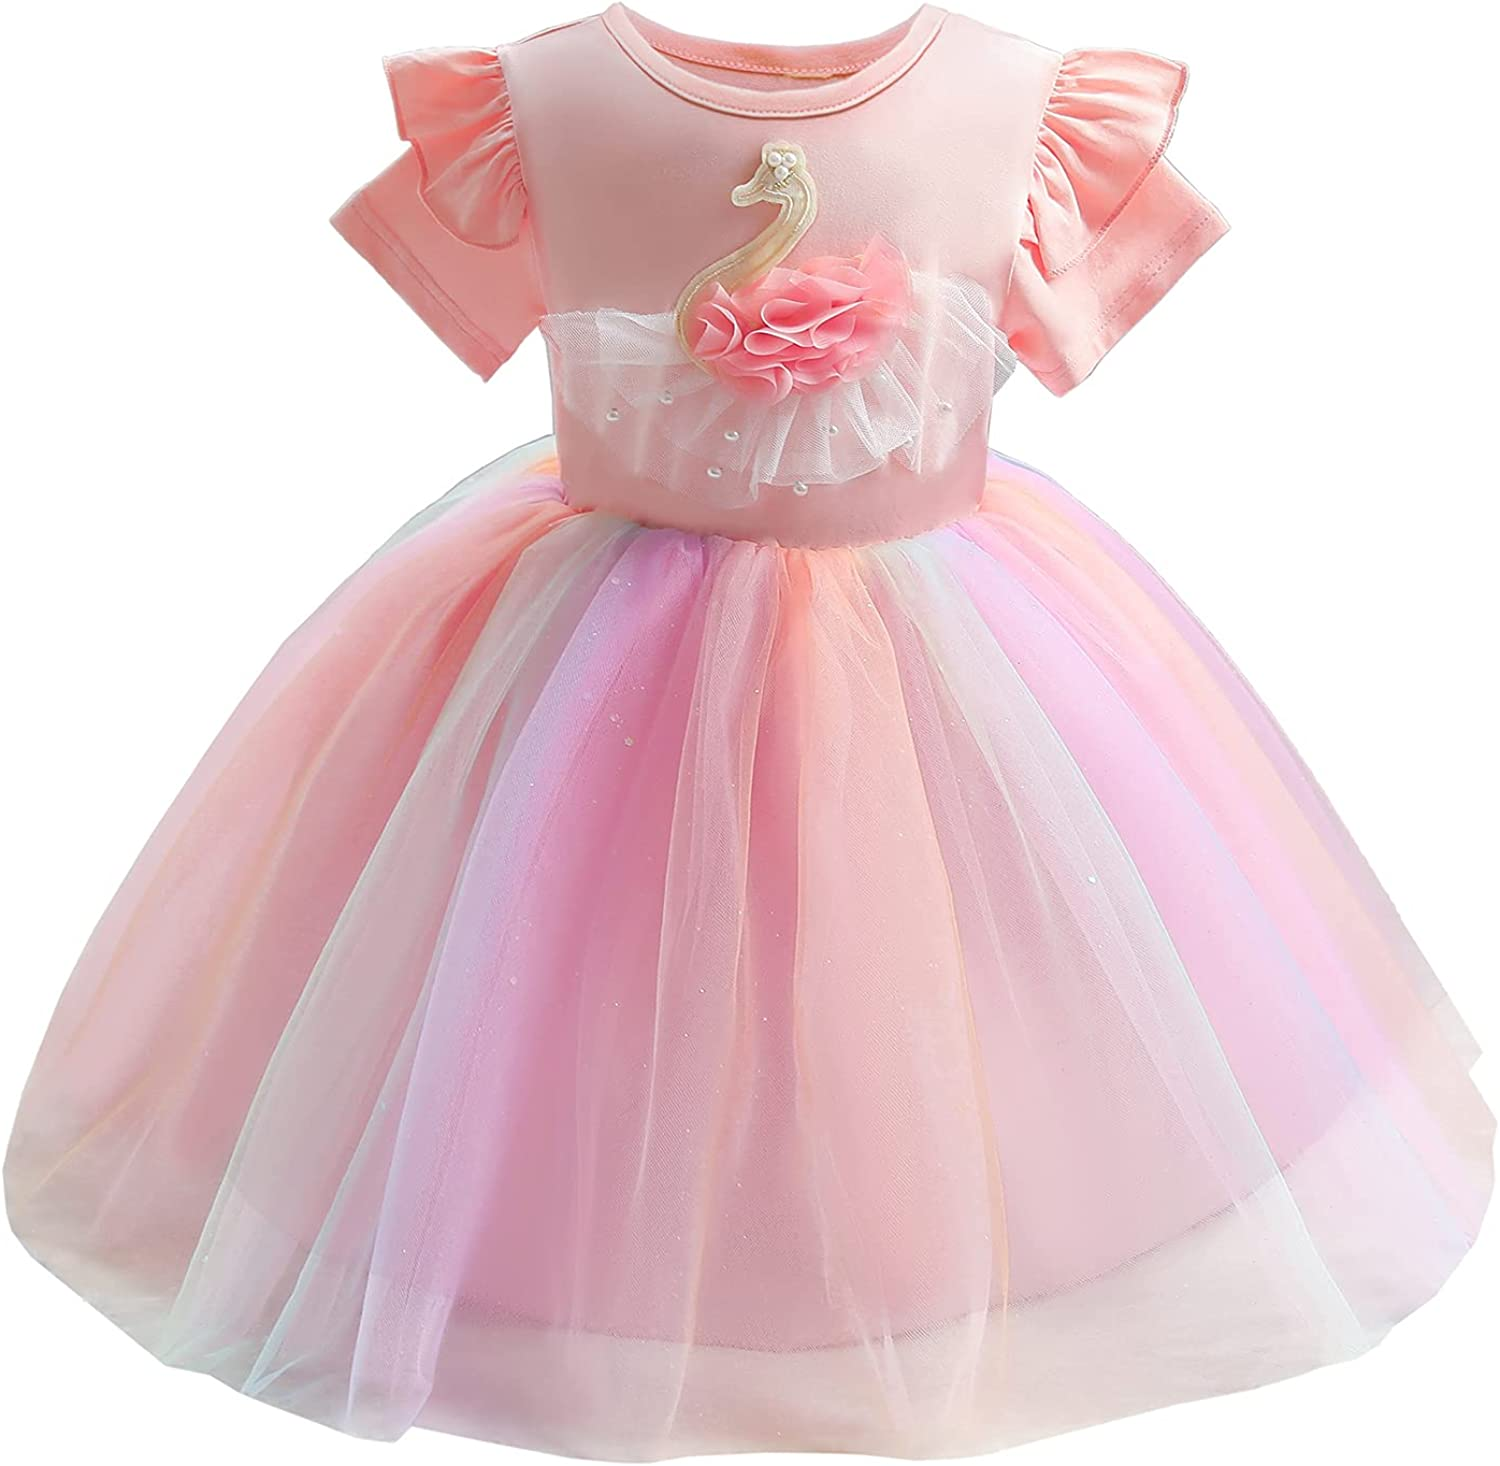 3-10 Years Big/Little Girls Bridesmaid Dress A-Line Wedding Pageant Dresses Tulle Party Dance Gown - 8202